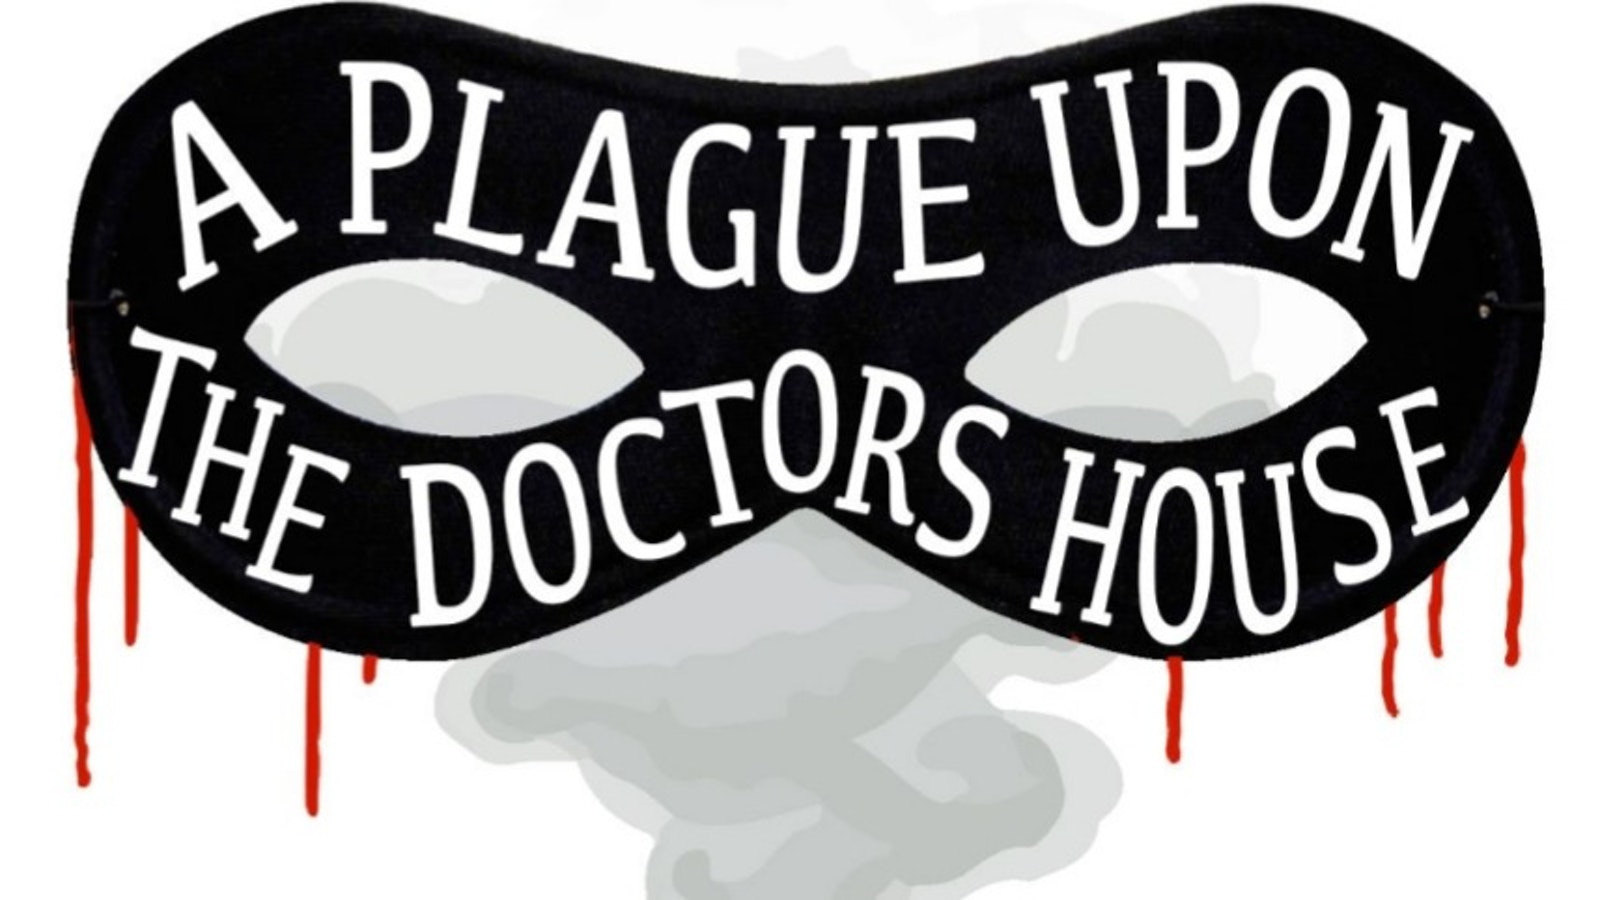 A Plague Upon the Doctor's House